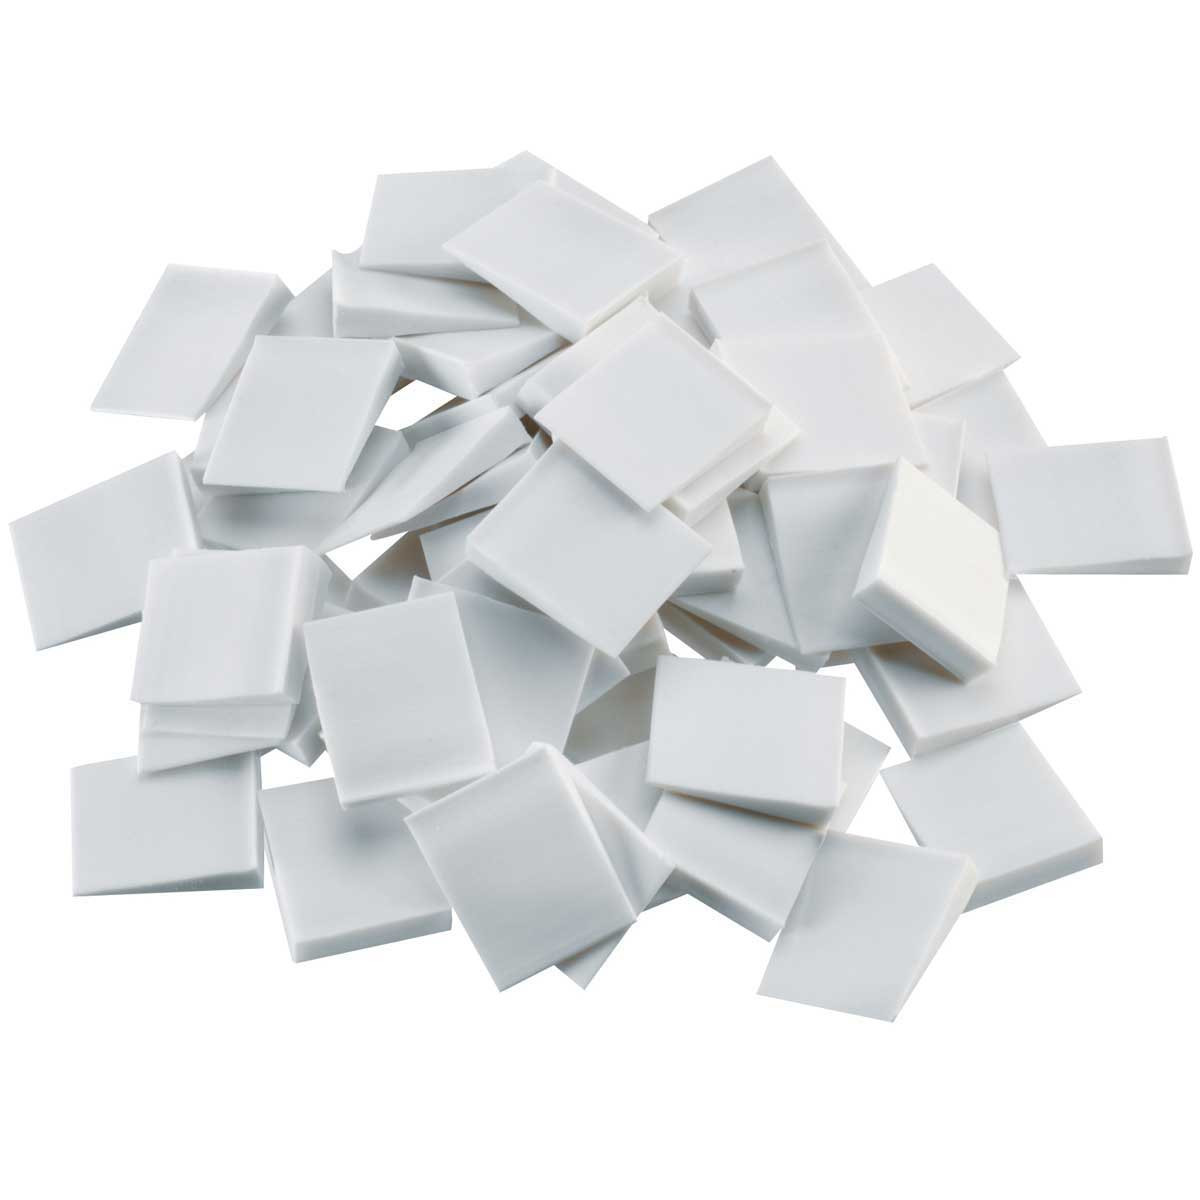 QEP Tile Wedges 500 Piece Bag